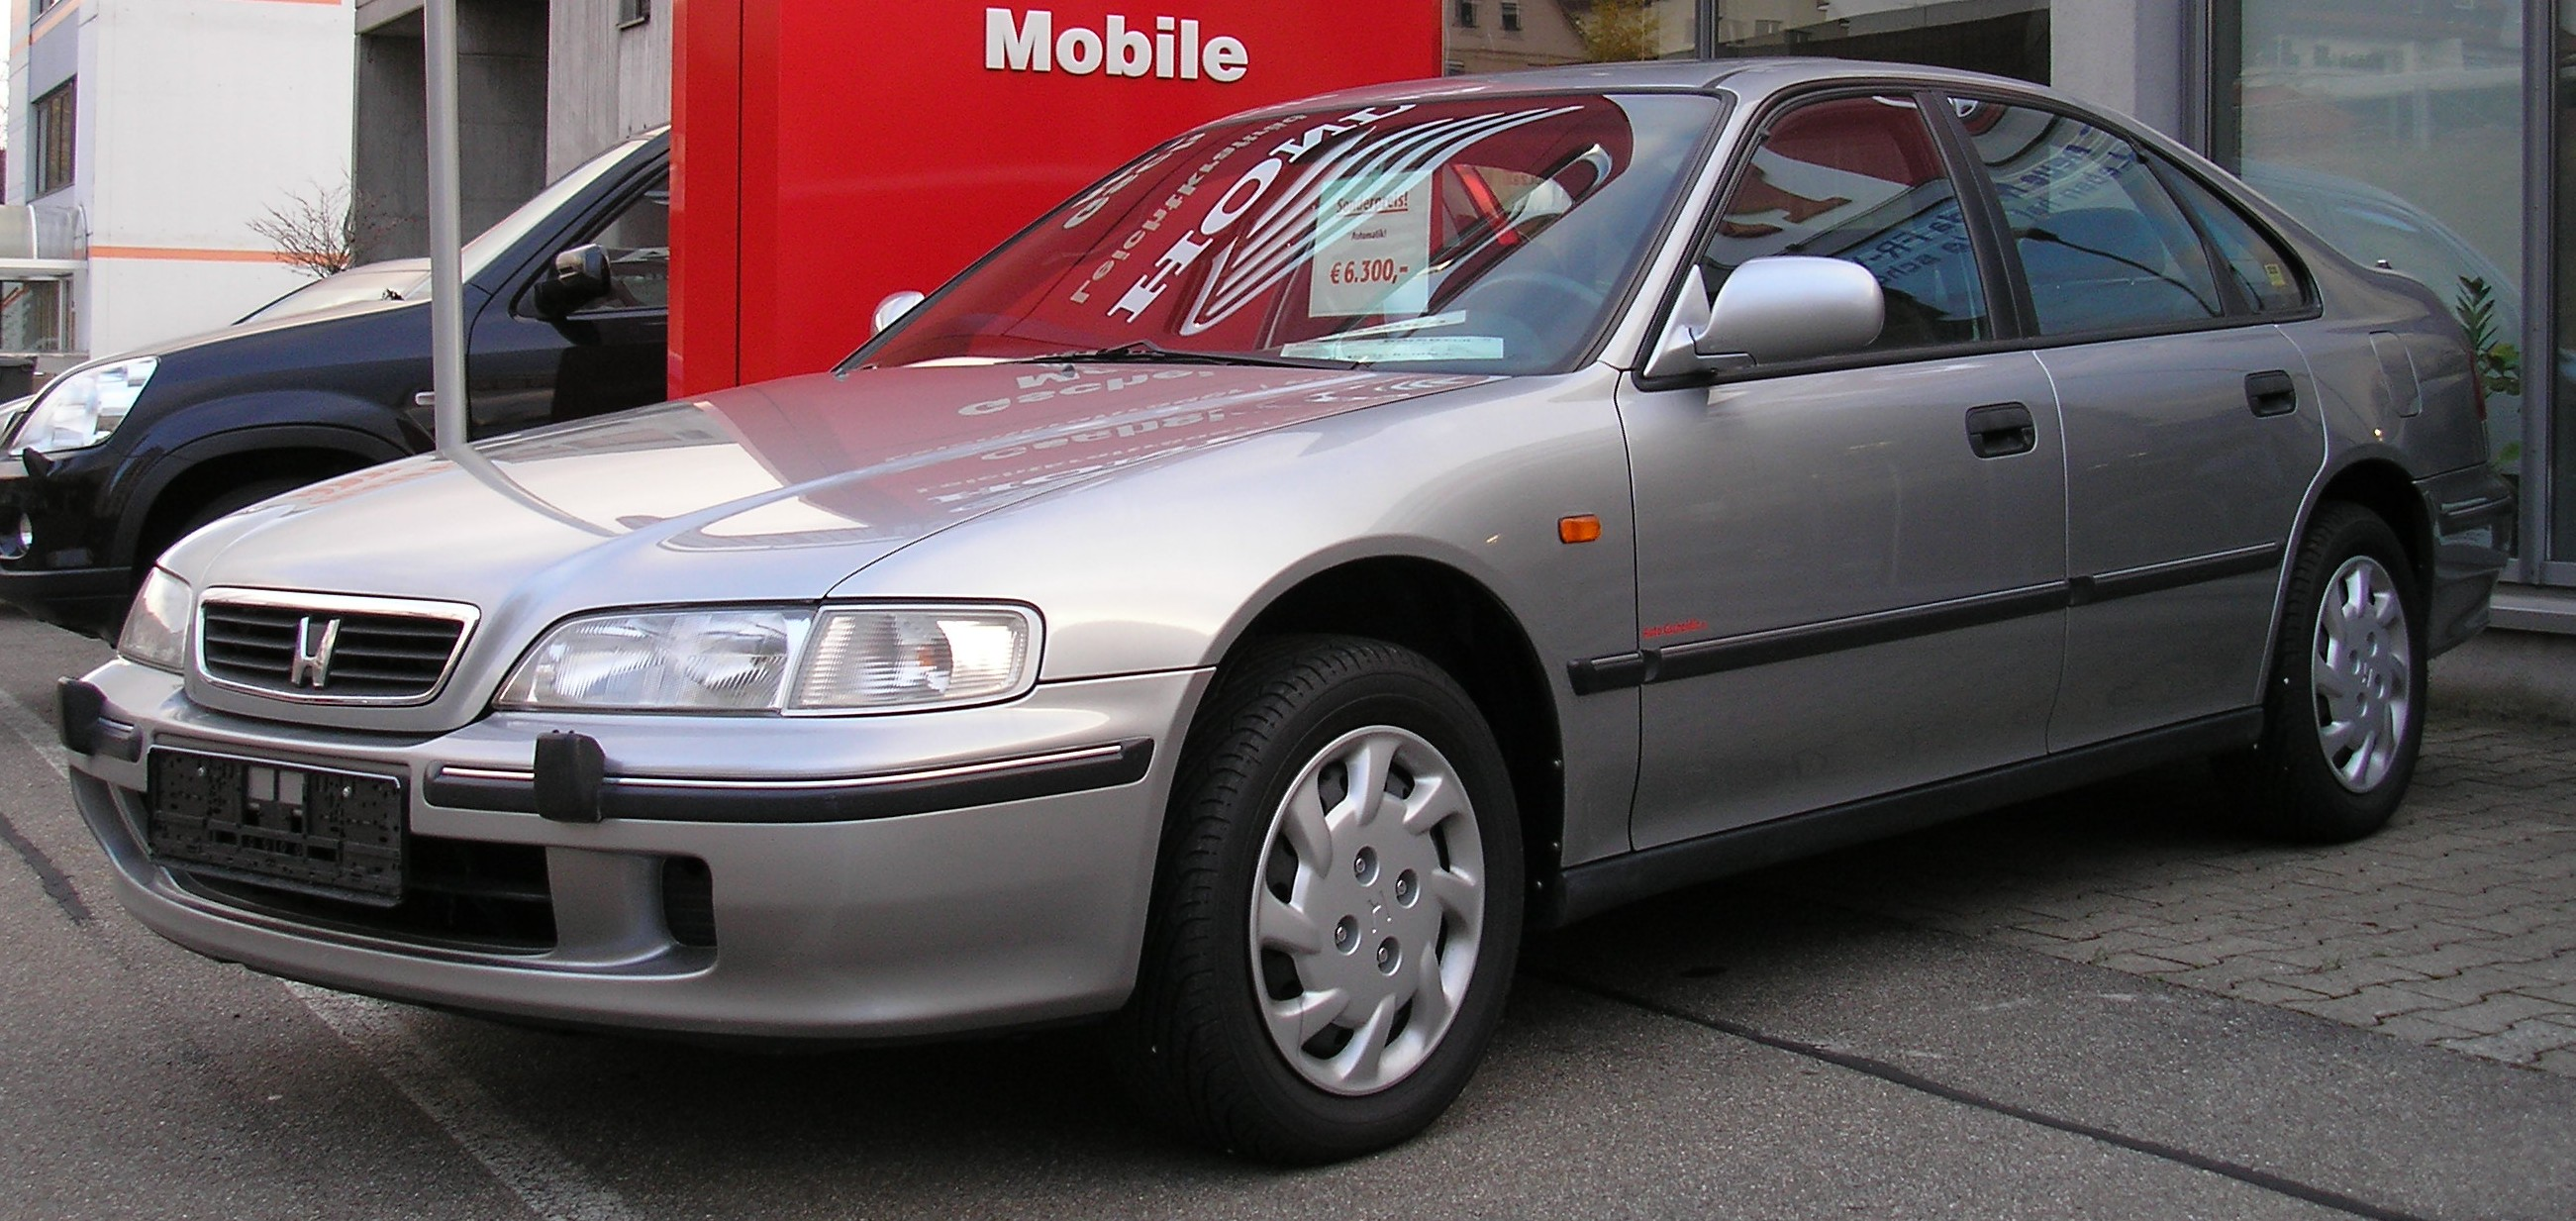 honda accord v (cc, ce) 1995 pictures #5